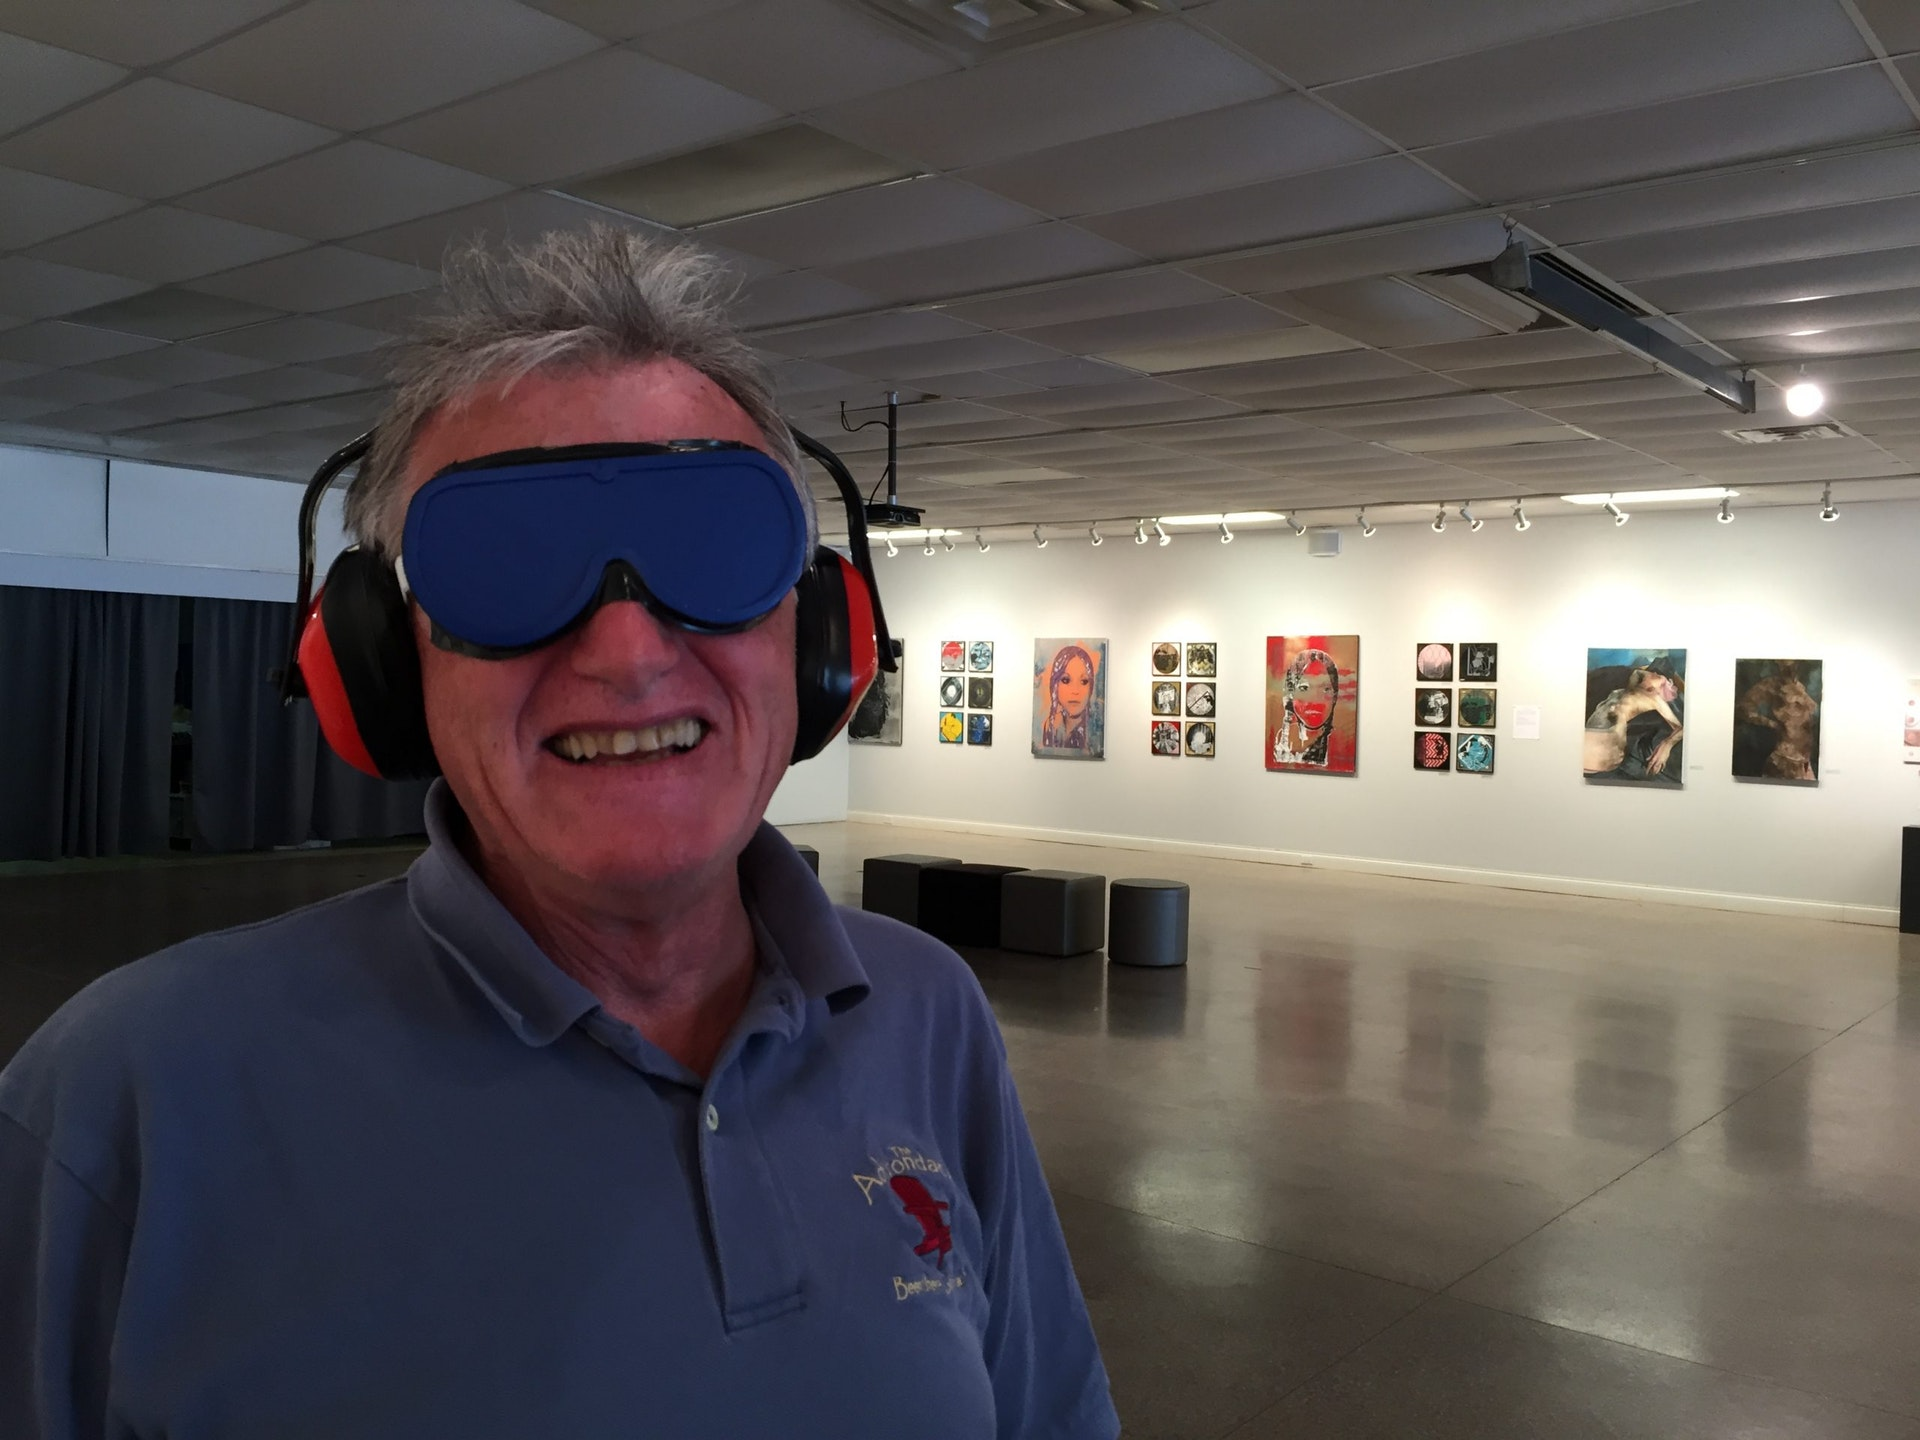 The-Unwonted-interactive-goggles-2015-10-9